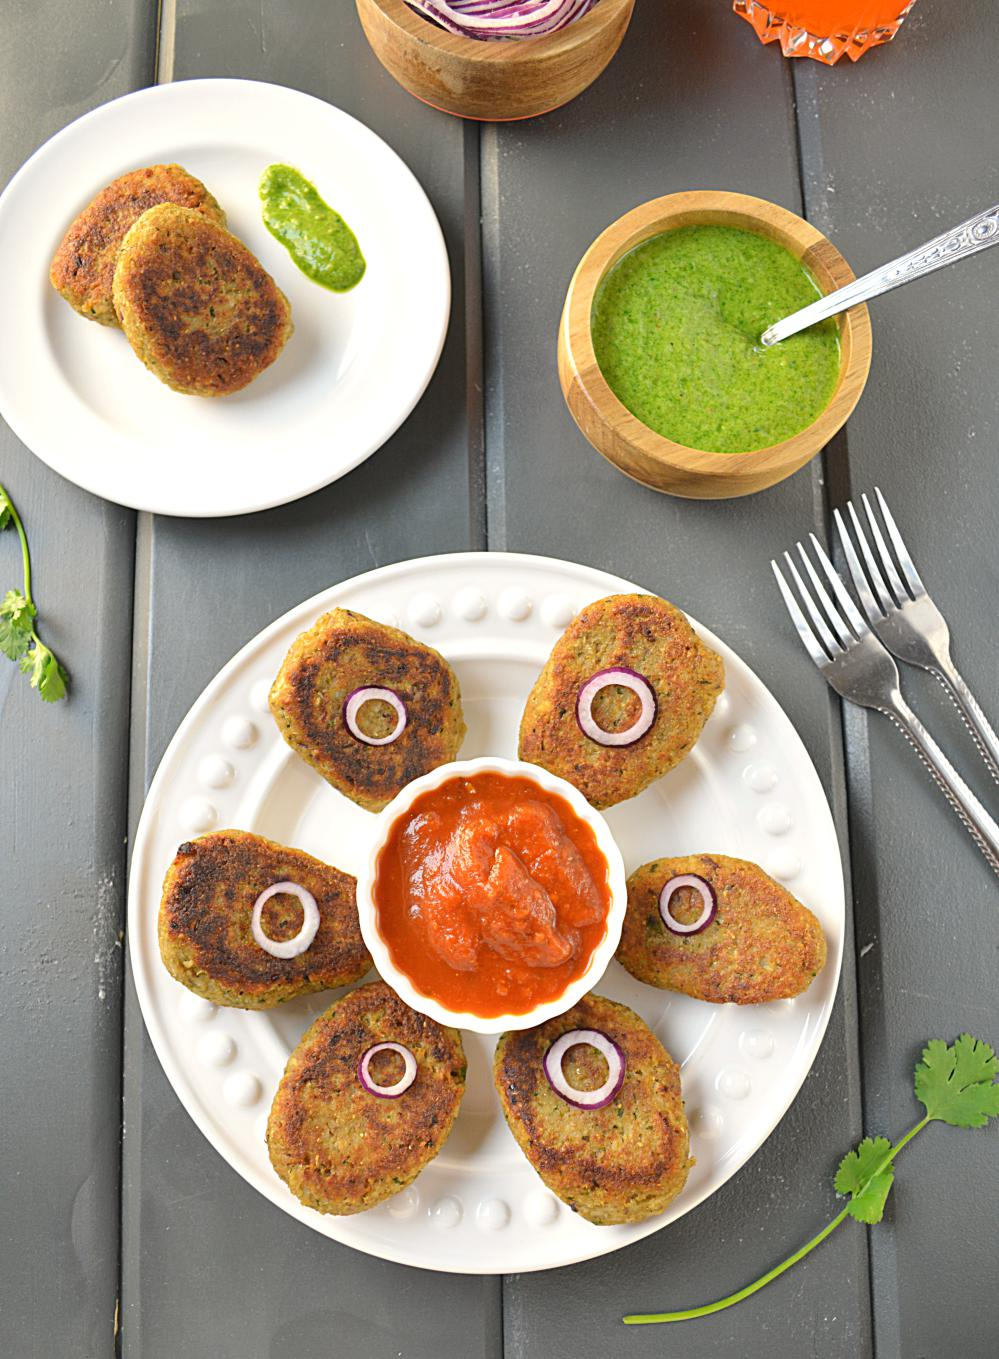 Kamal Kakdi cutlets or Lotus stem cutlets